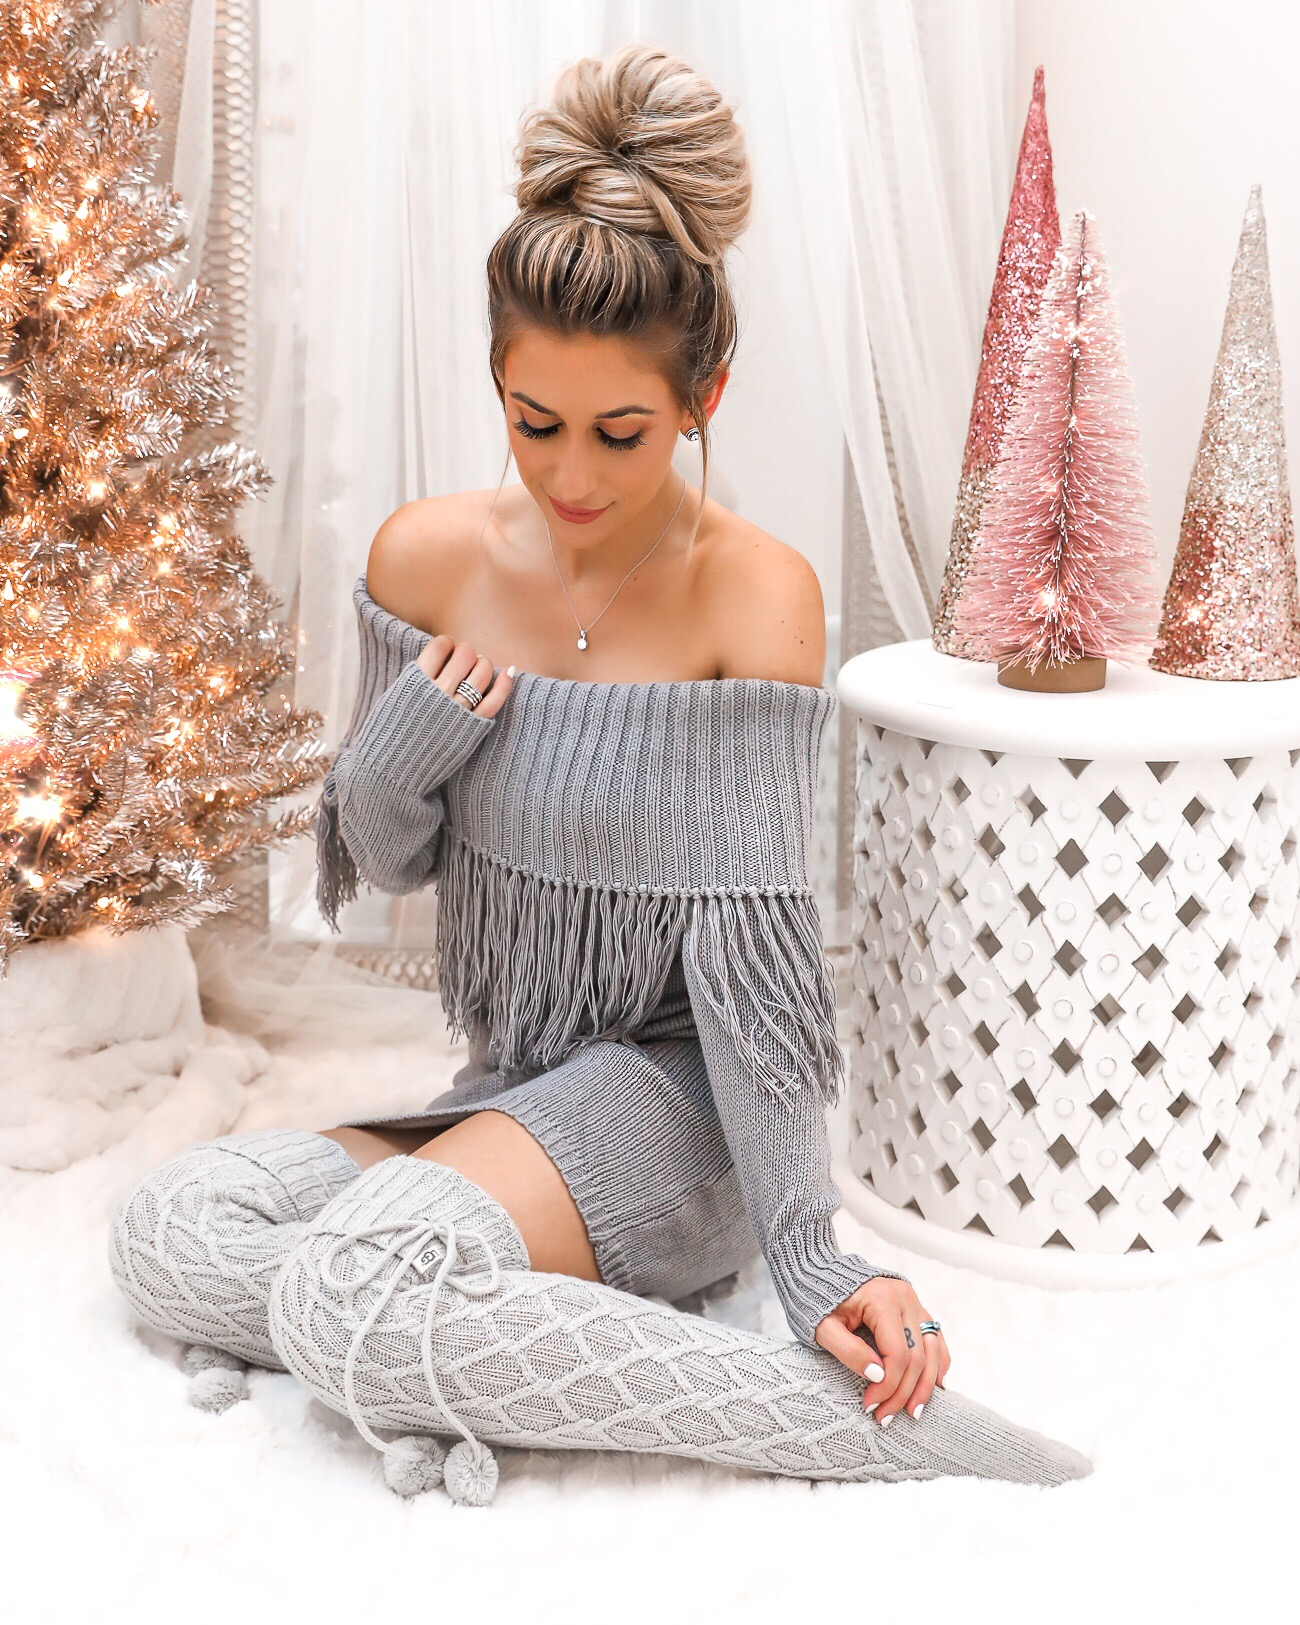 Simon G Jewelry Christmas Gift Idea For Her Grey Fringe Dress Pink Christmas Tree Laura Beverlin UGG cable knit over the knee socks fringe sweater dress